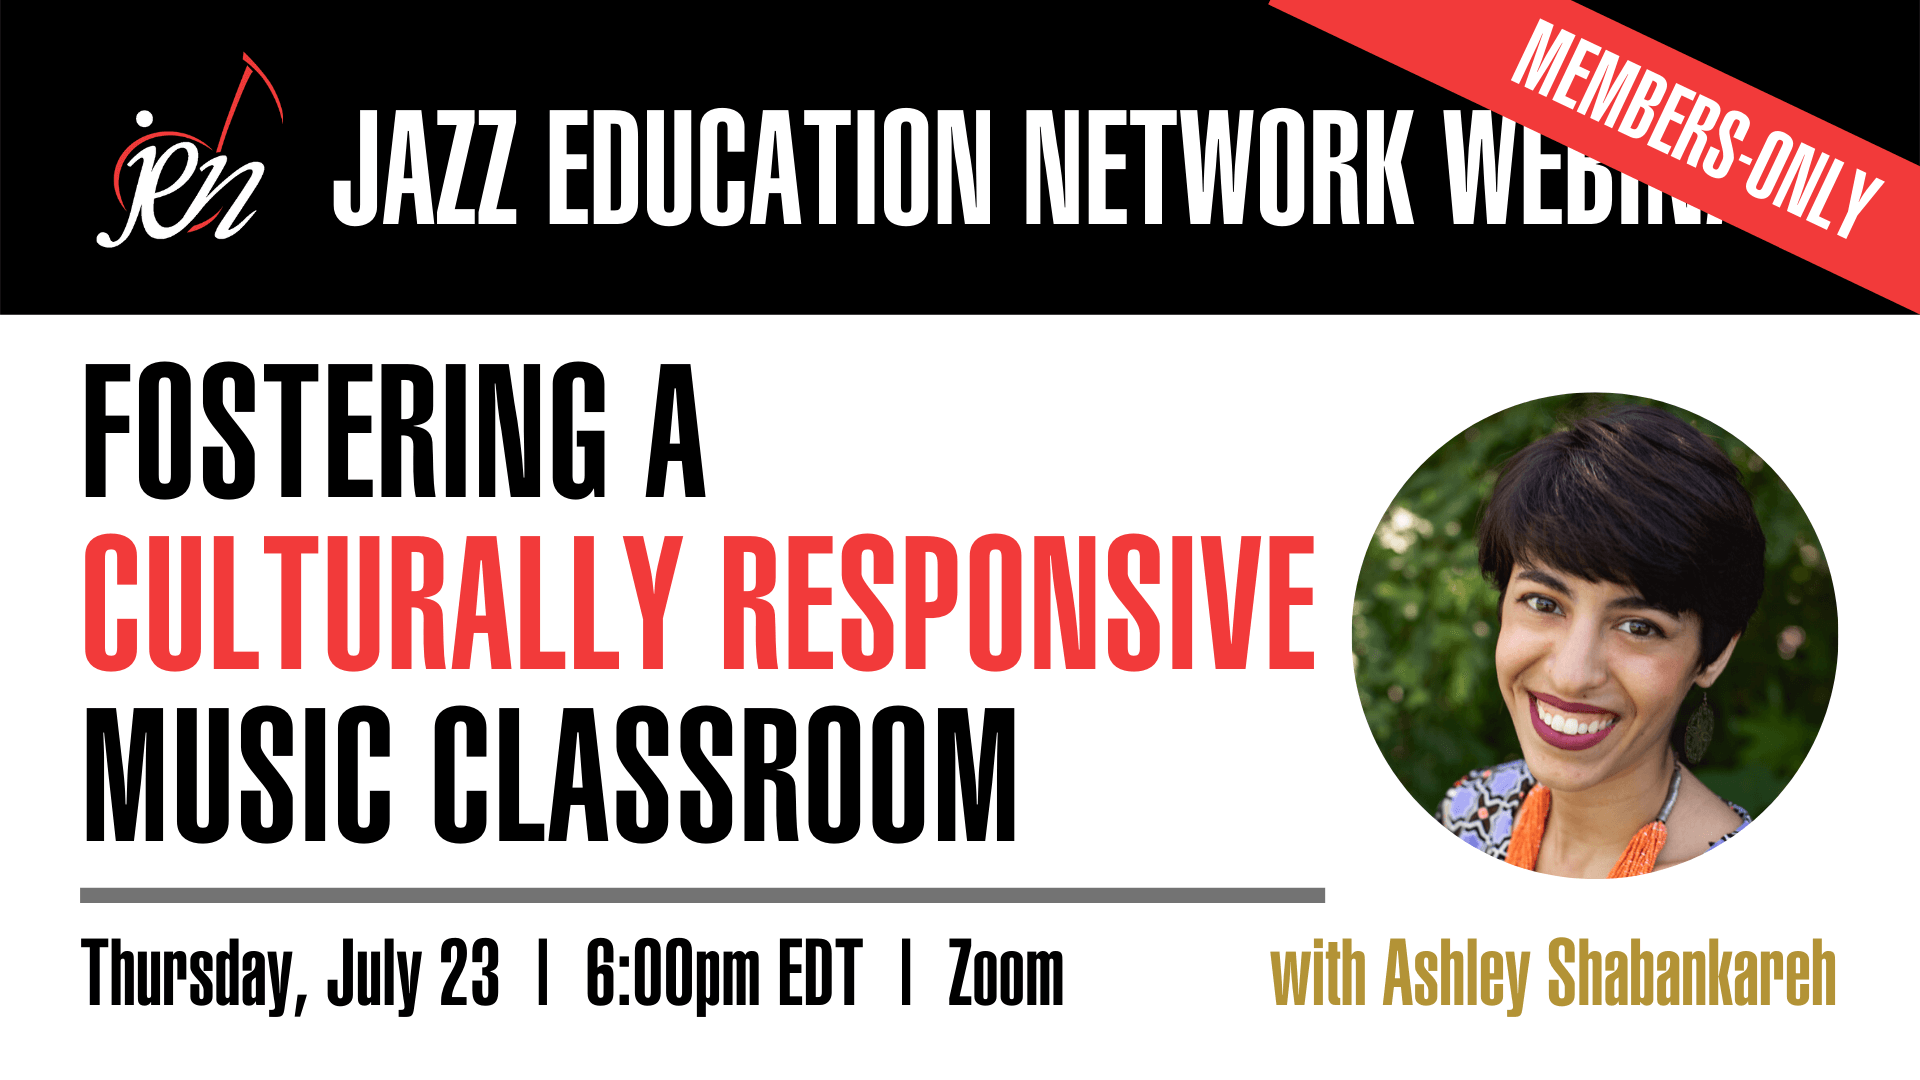 A Jazz Education Network Members-Only Webinar • Fostering A Culturally Responsive Music Classroom with Ashley Shabankareh • Thursday, July 23, 6pm Eastern • Zoom